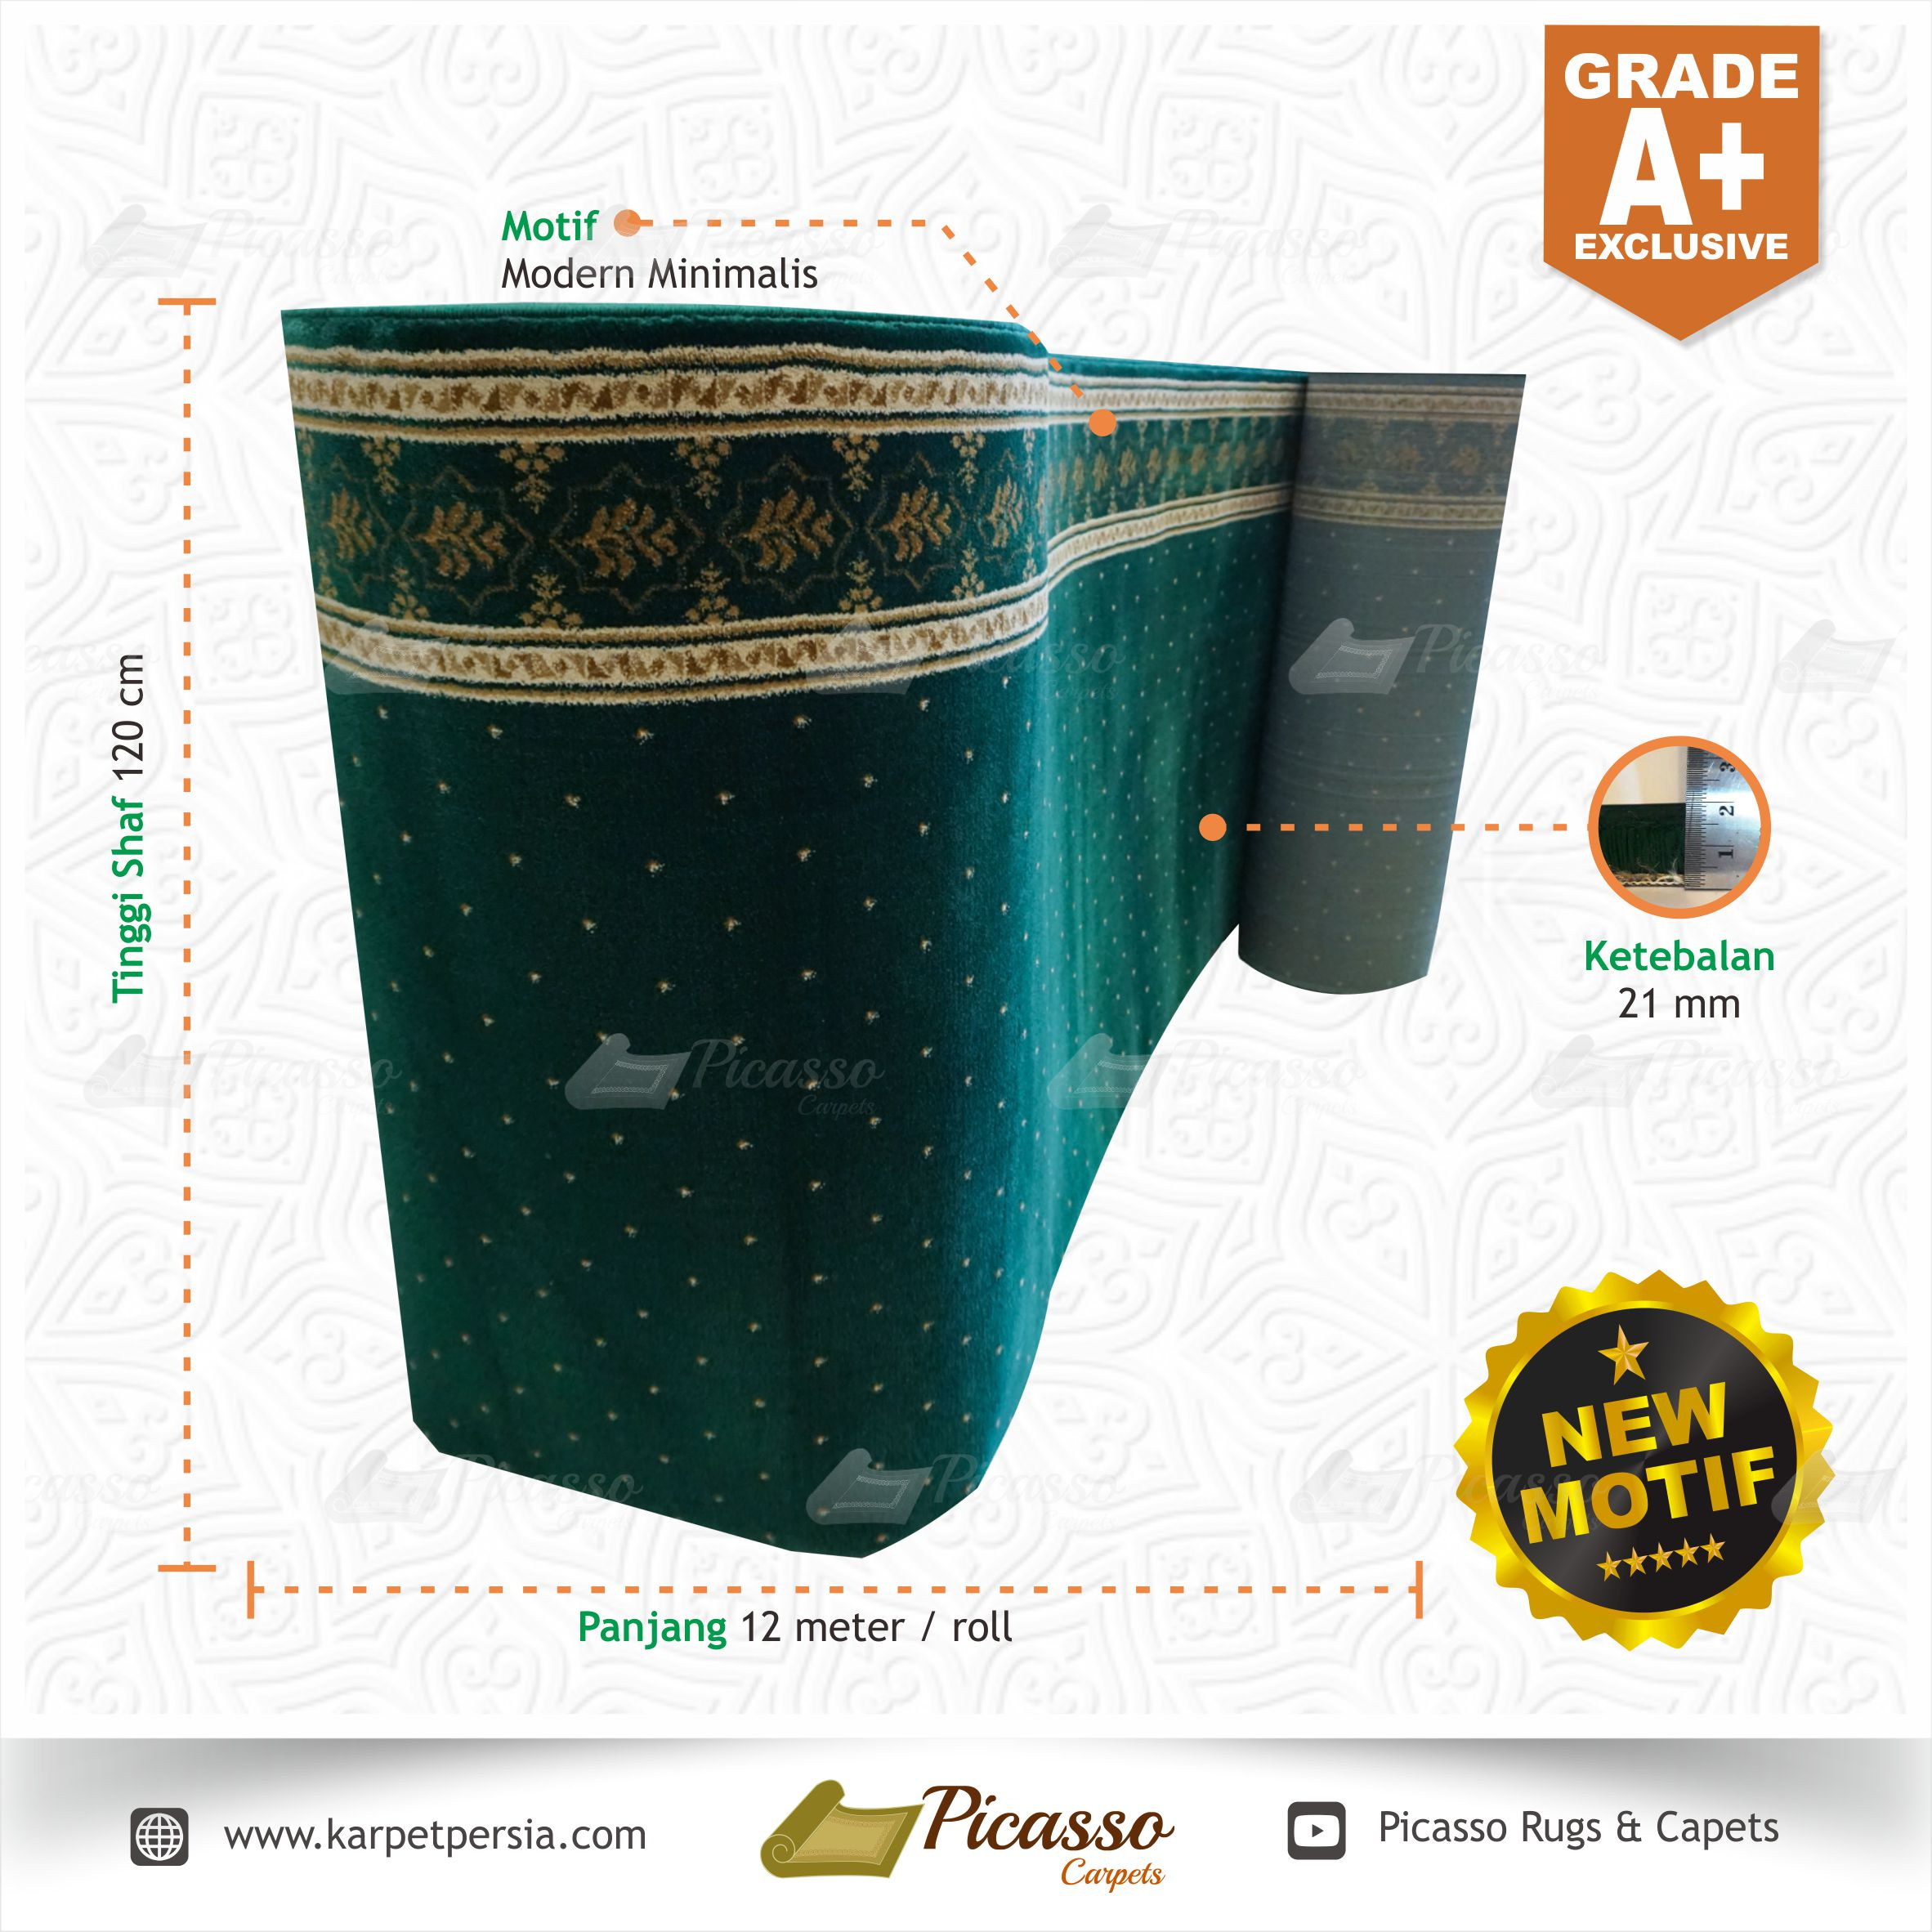 Karpet Masjid New Motif Grade A+ Exclusive (5)